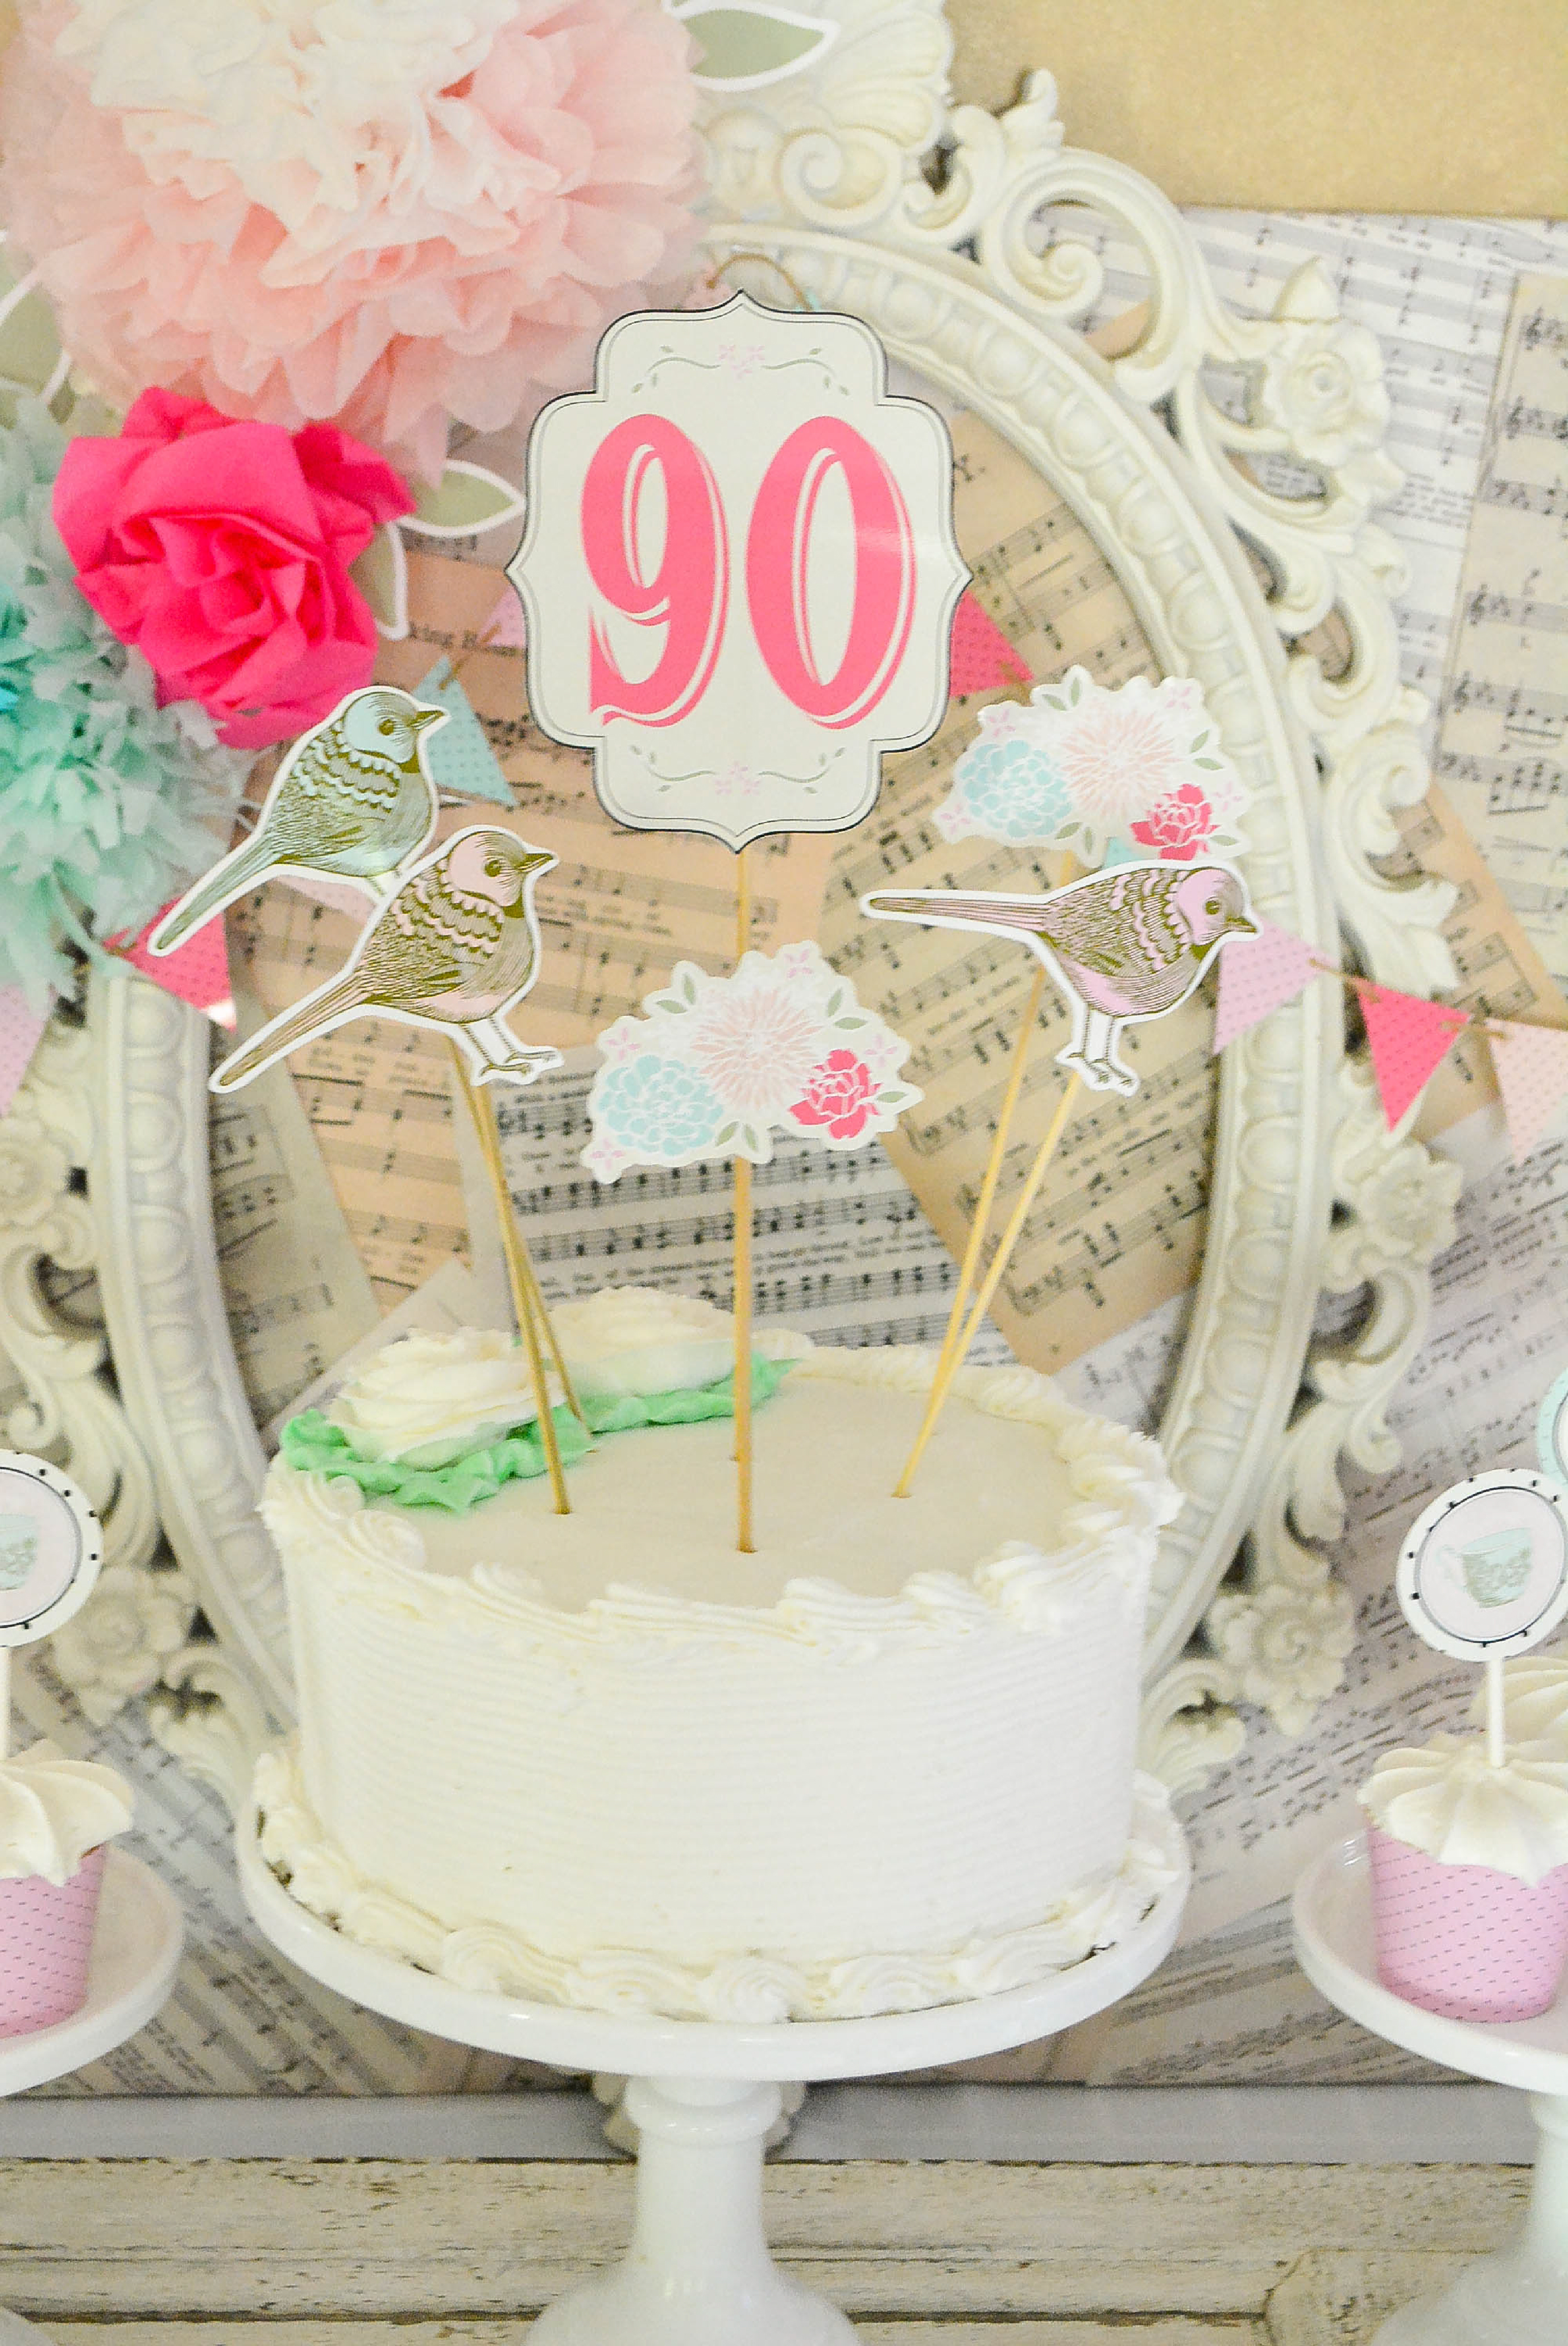 A Shabby Chic Vintage Rose 90th Birthday Celebration Anders Ruff